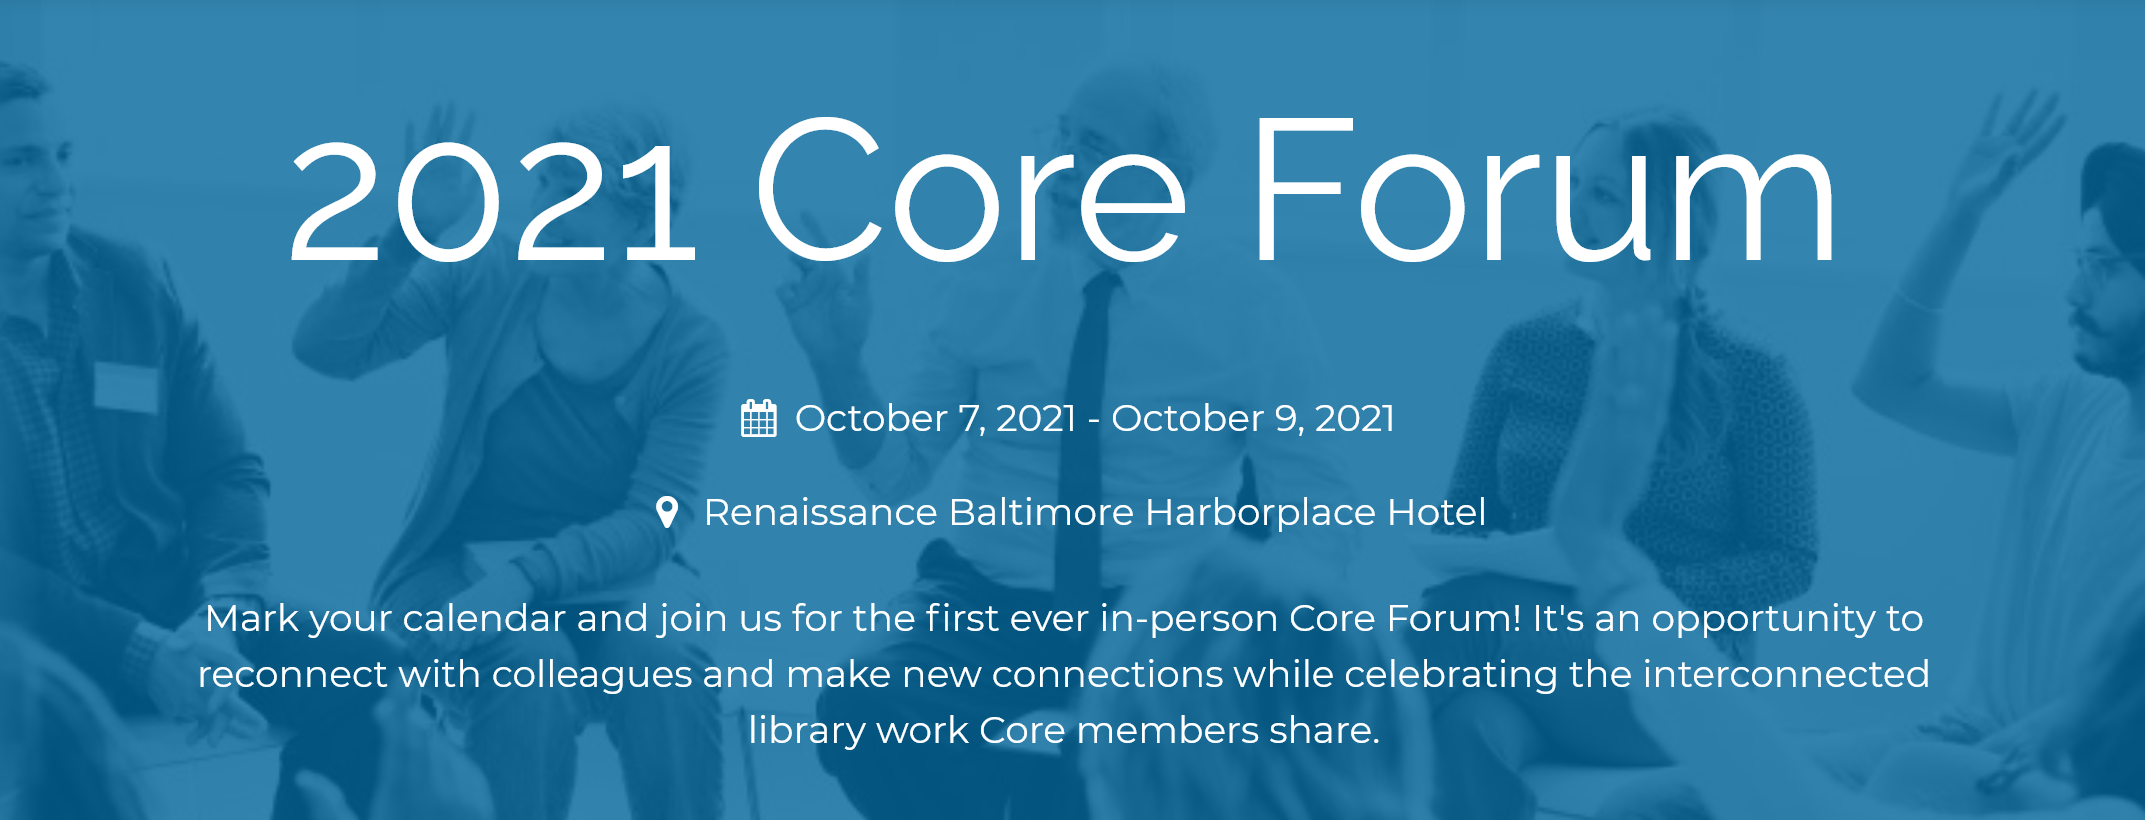 Save the Date: 2021 Core Forum